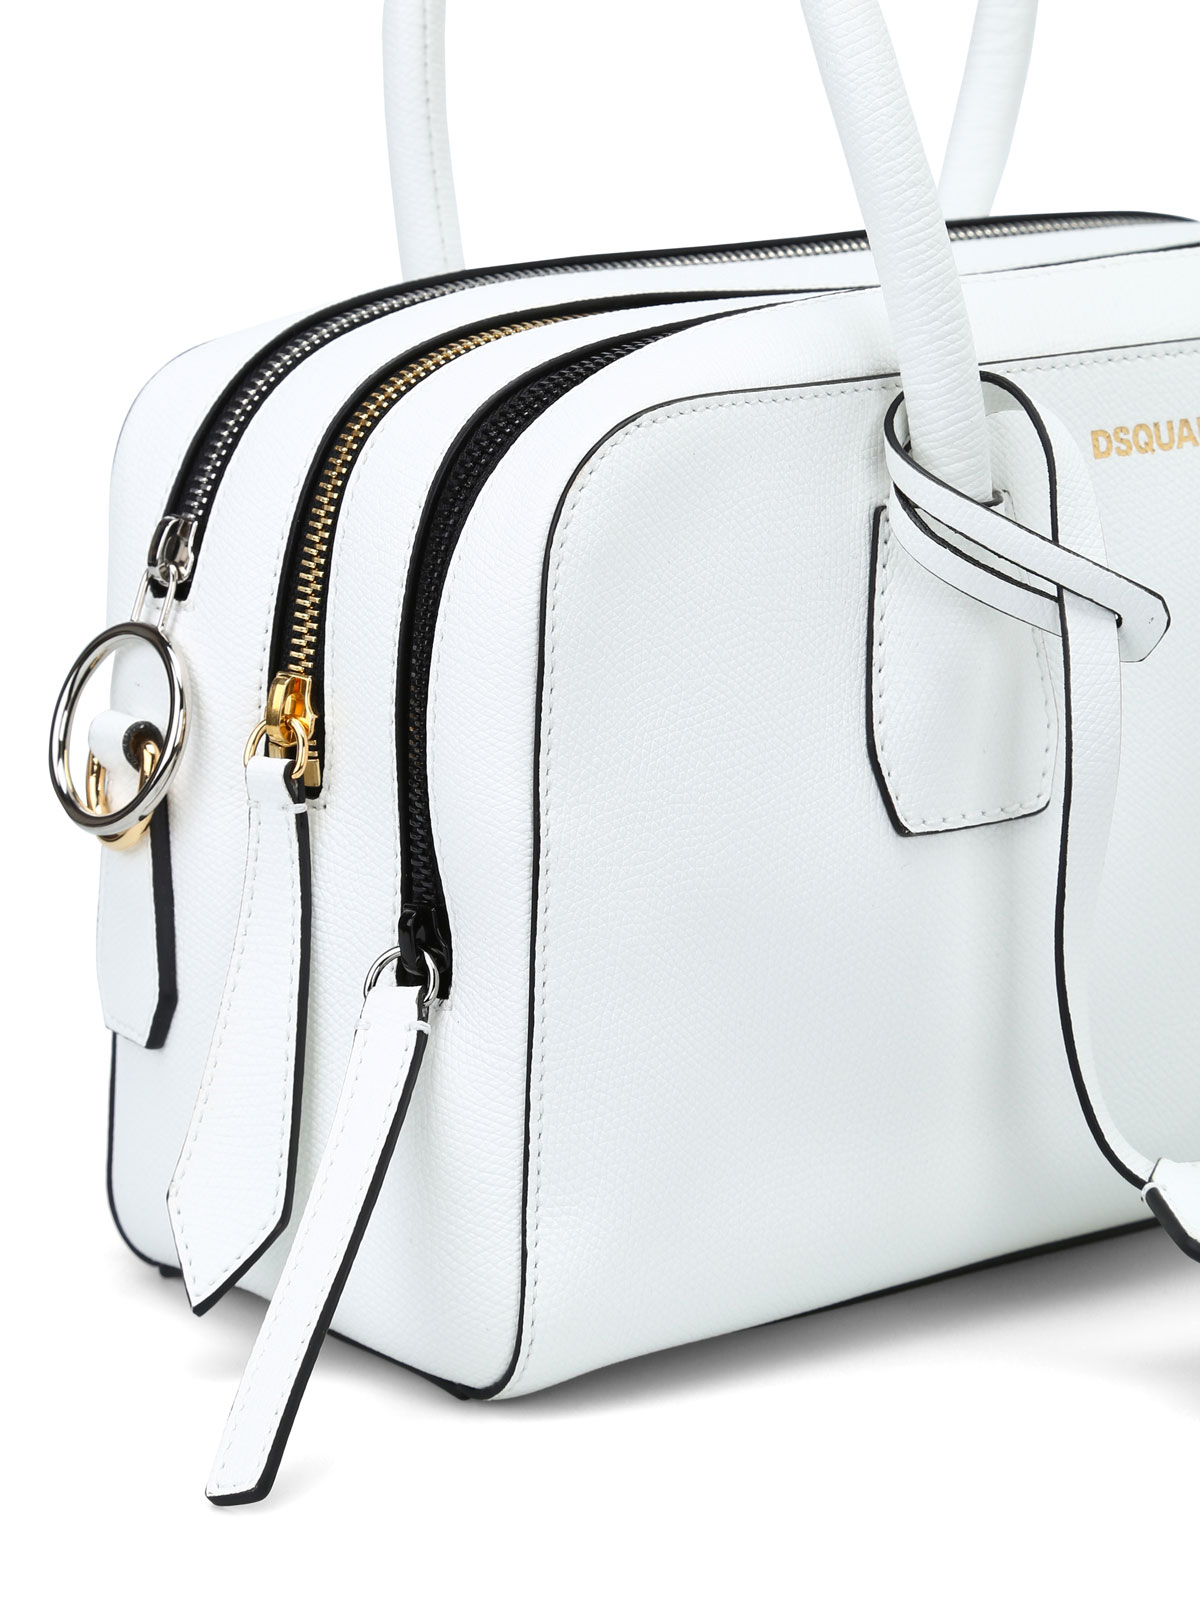 Dsquared2 Three zip white leather bowling bag z9bjVJSA